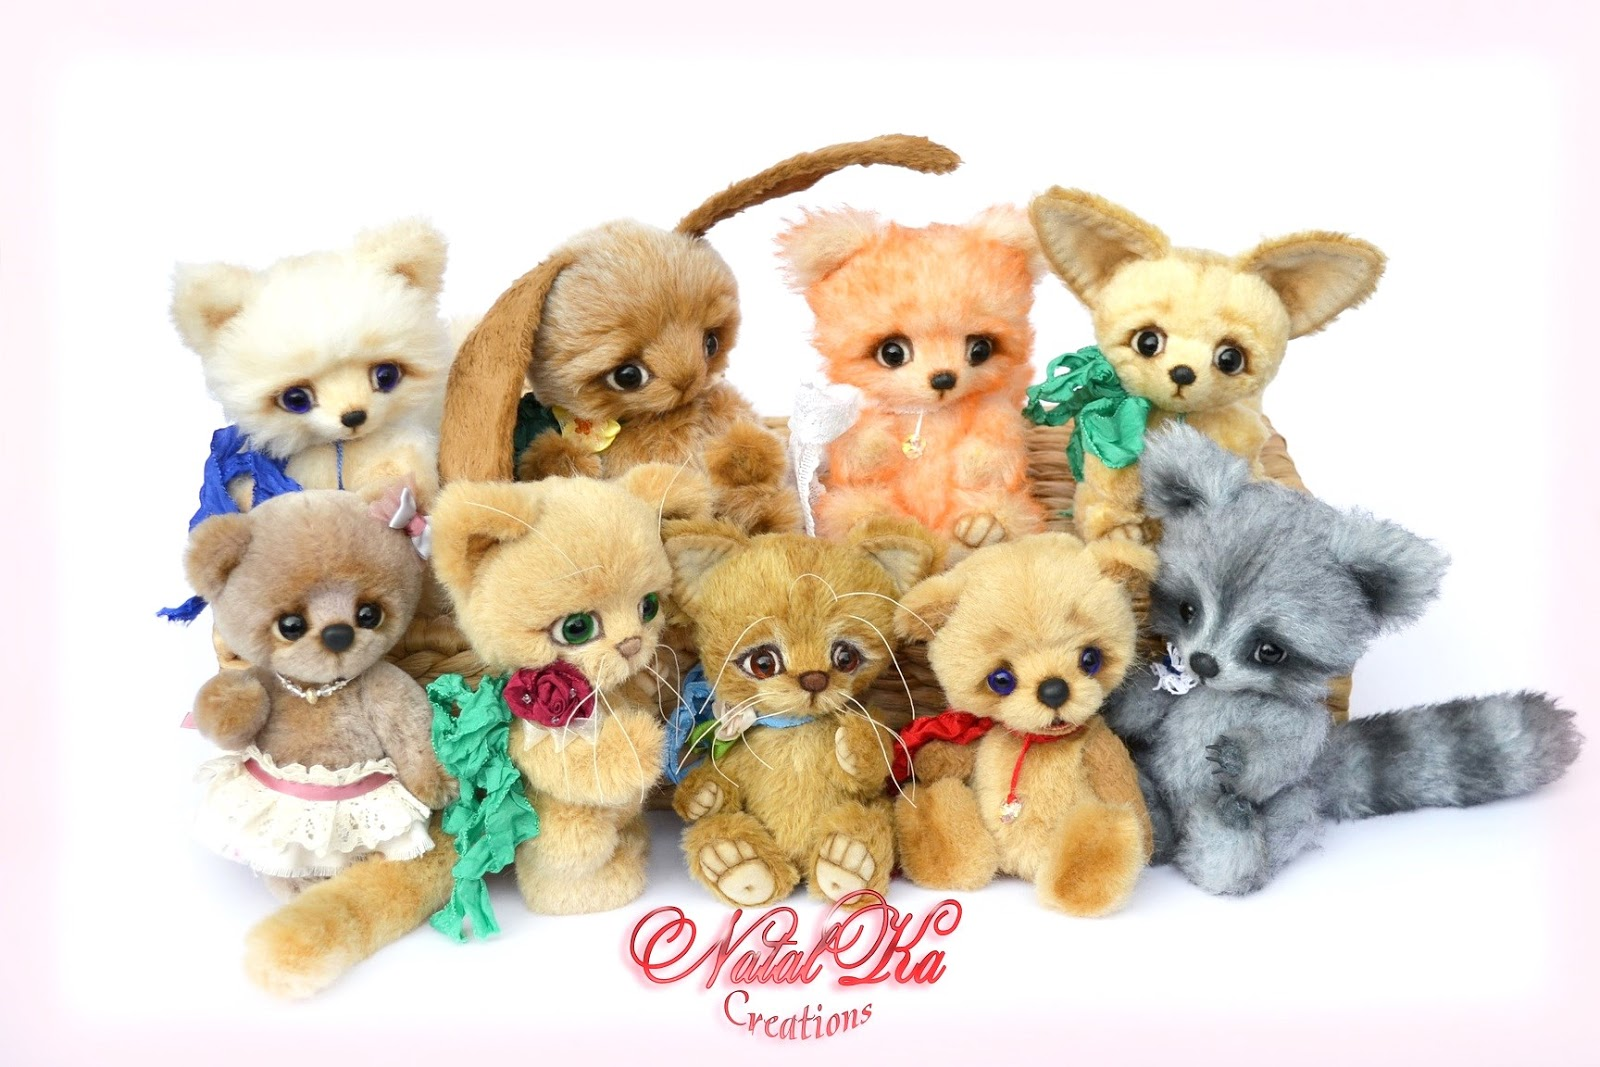 Artist teddy bears, artist bears, teddy bears,teddies with charm, ooak, mohair, handmade by NatalKa Creations. Künstlerbären, Künstlerteddys, Teddybären, Teddys, Unikate, handgemacht von NatalKa Creations.